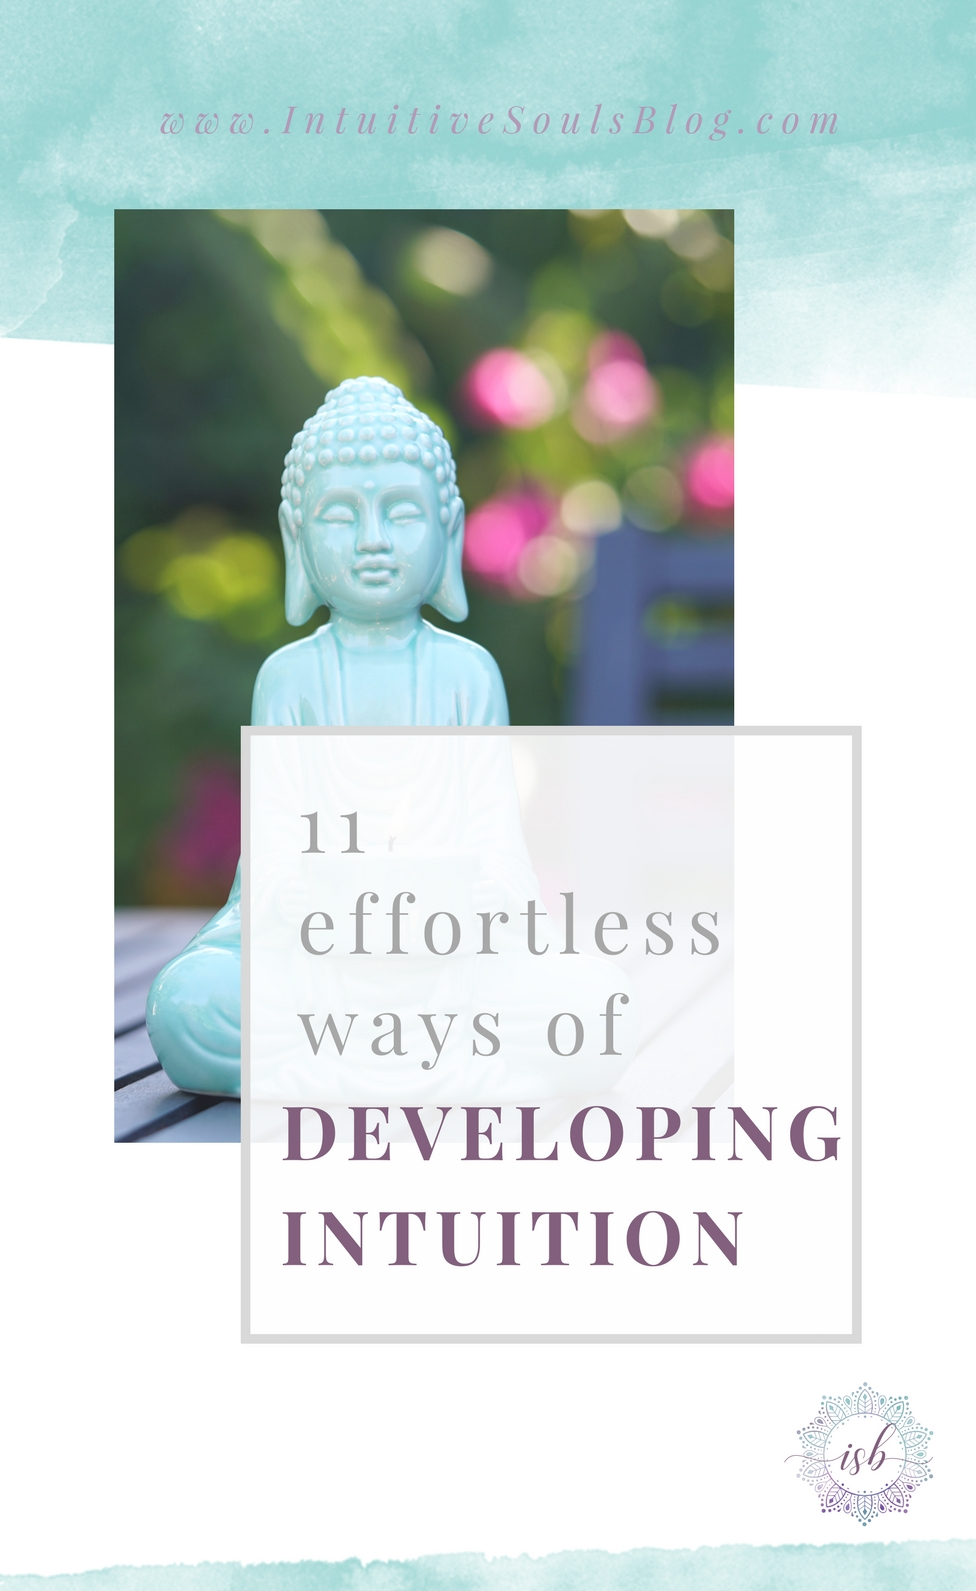 Not developing intuition is like wasting a super power. Here are 11 tips that will help rock your intuition in no time flat! (Hardly anyone knows about #10)